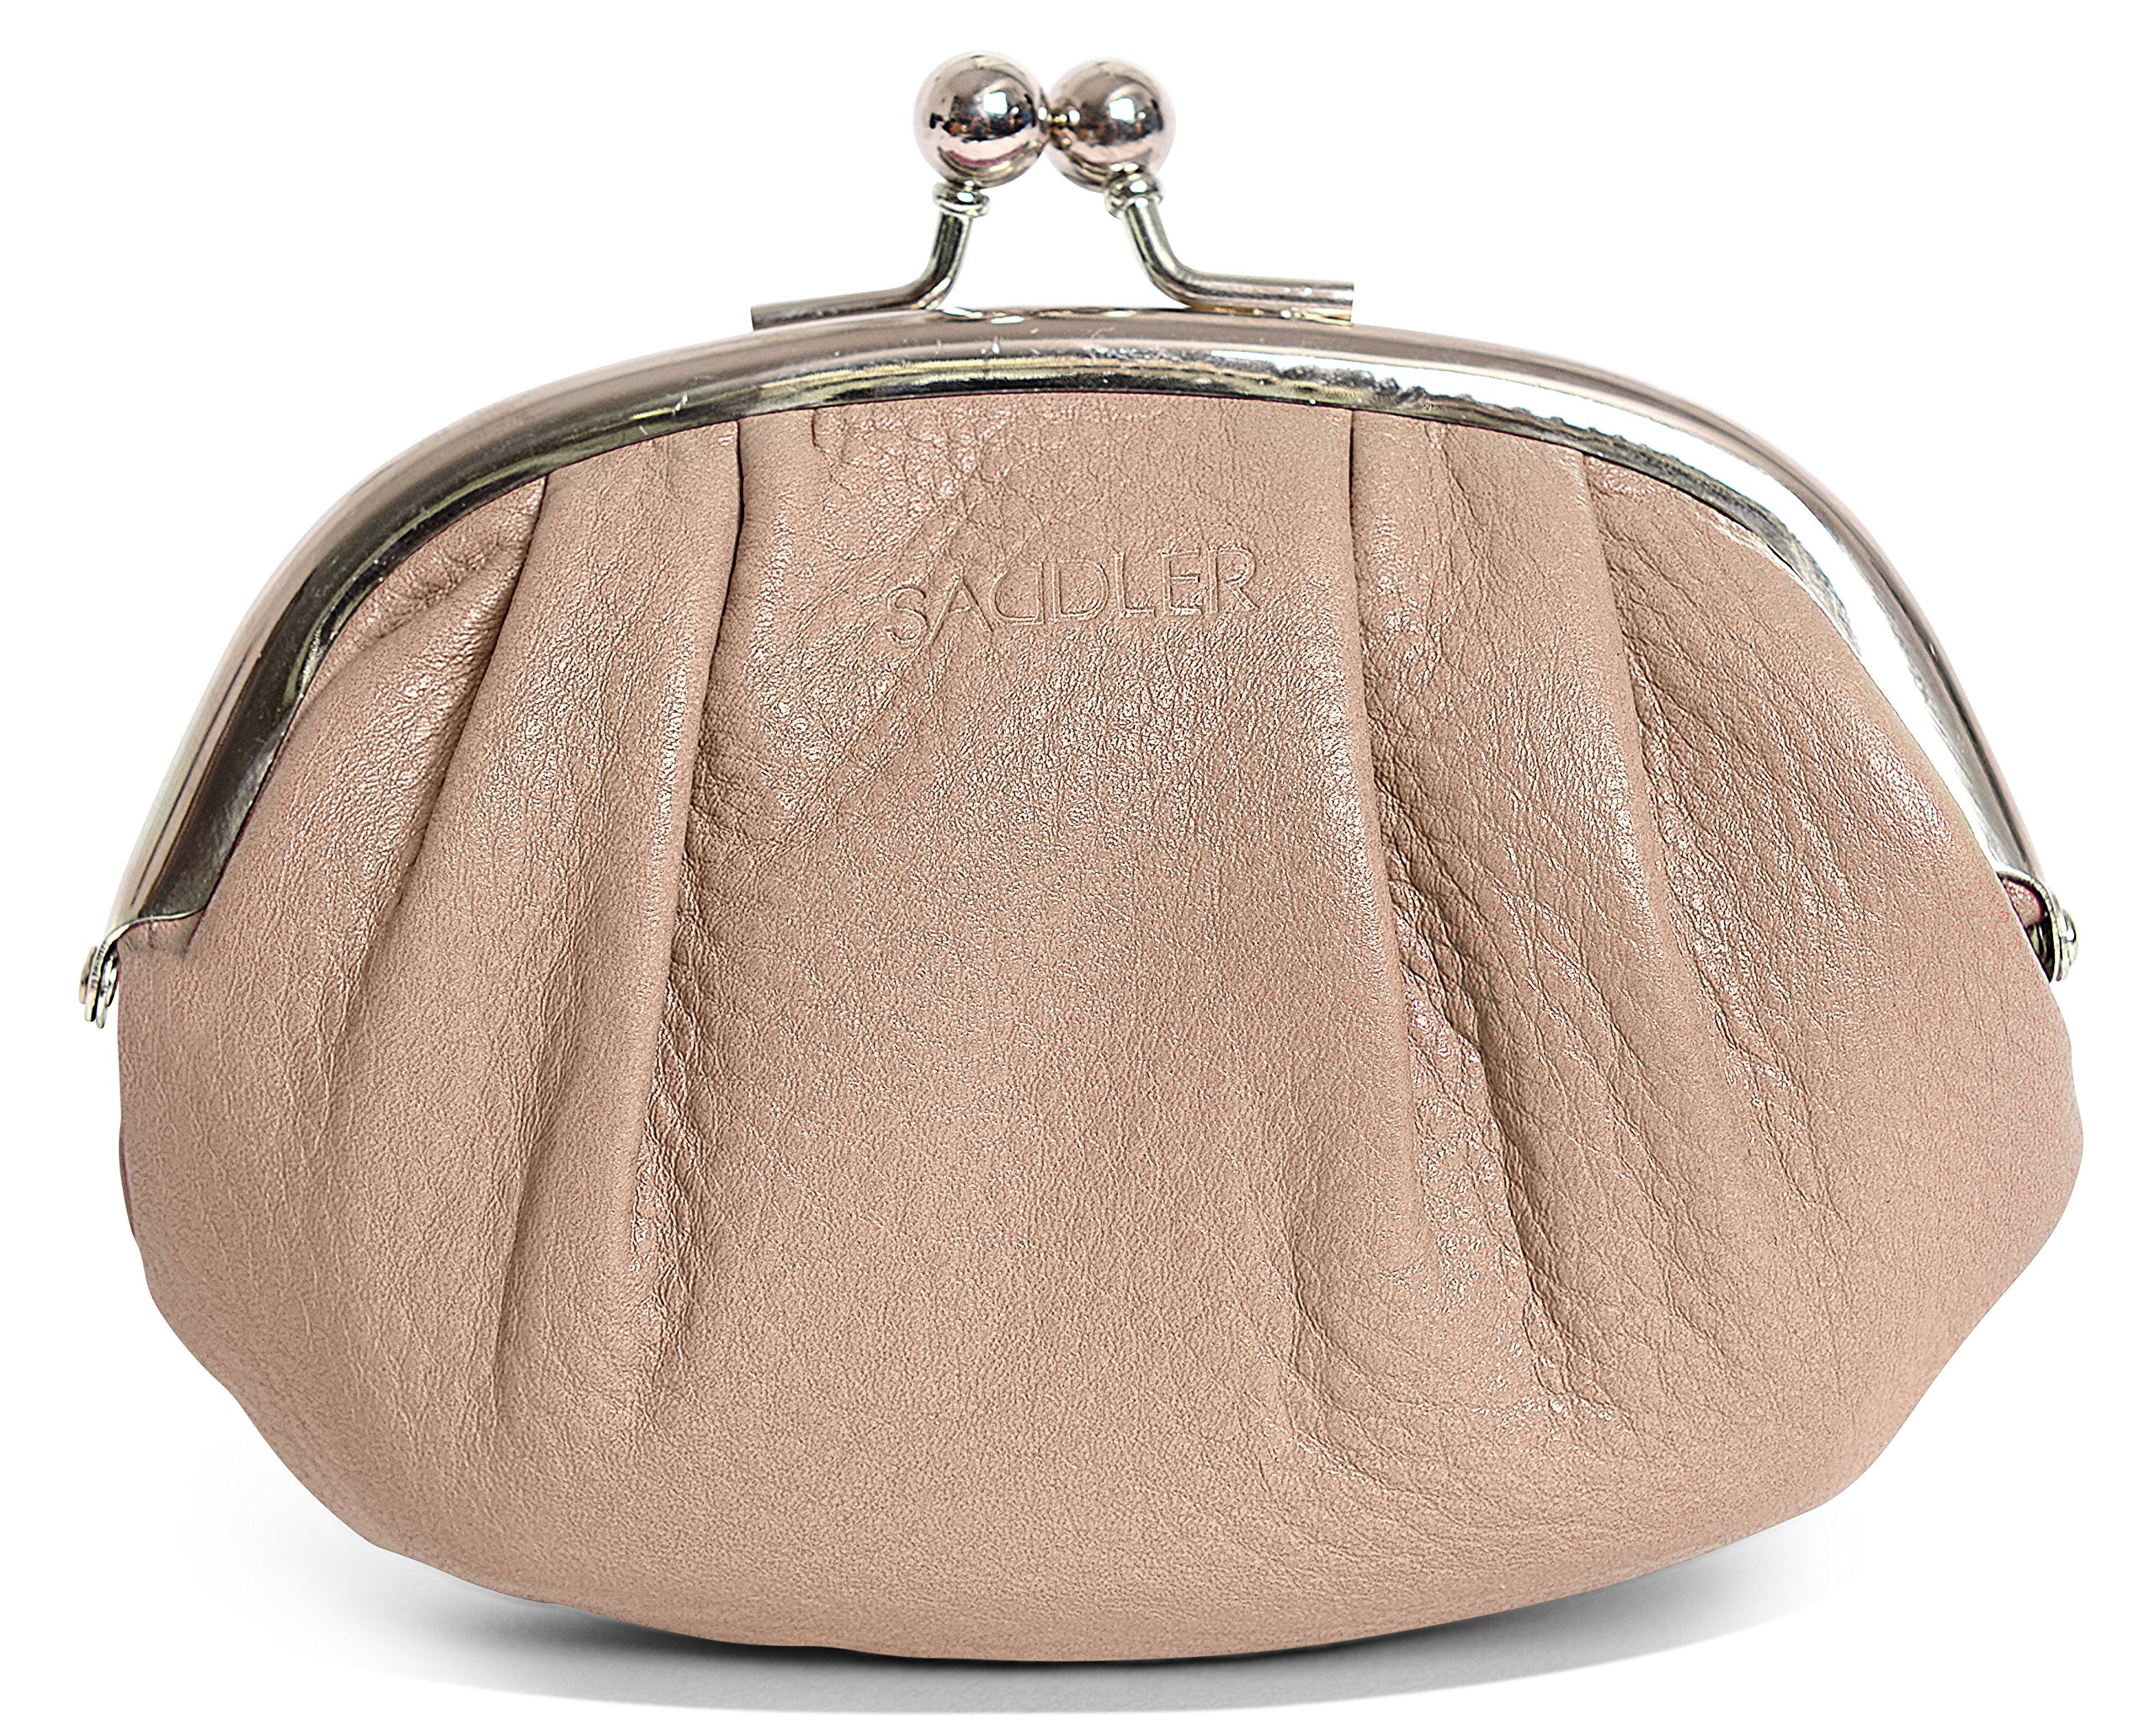 SADDLER Genuine Leather Womens Coin Purse Cosmetic Pouch With Frame Clasp - Taupe